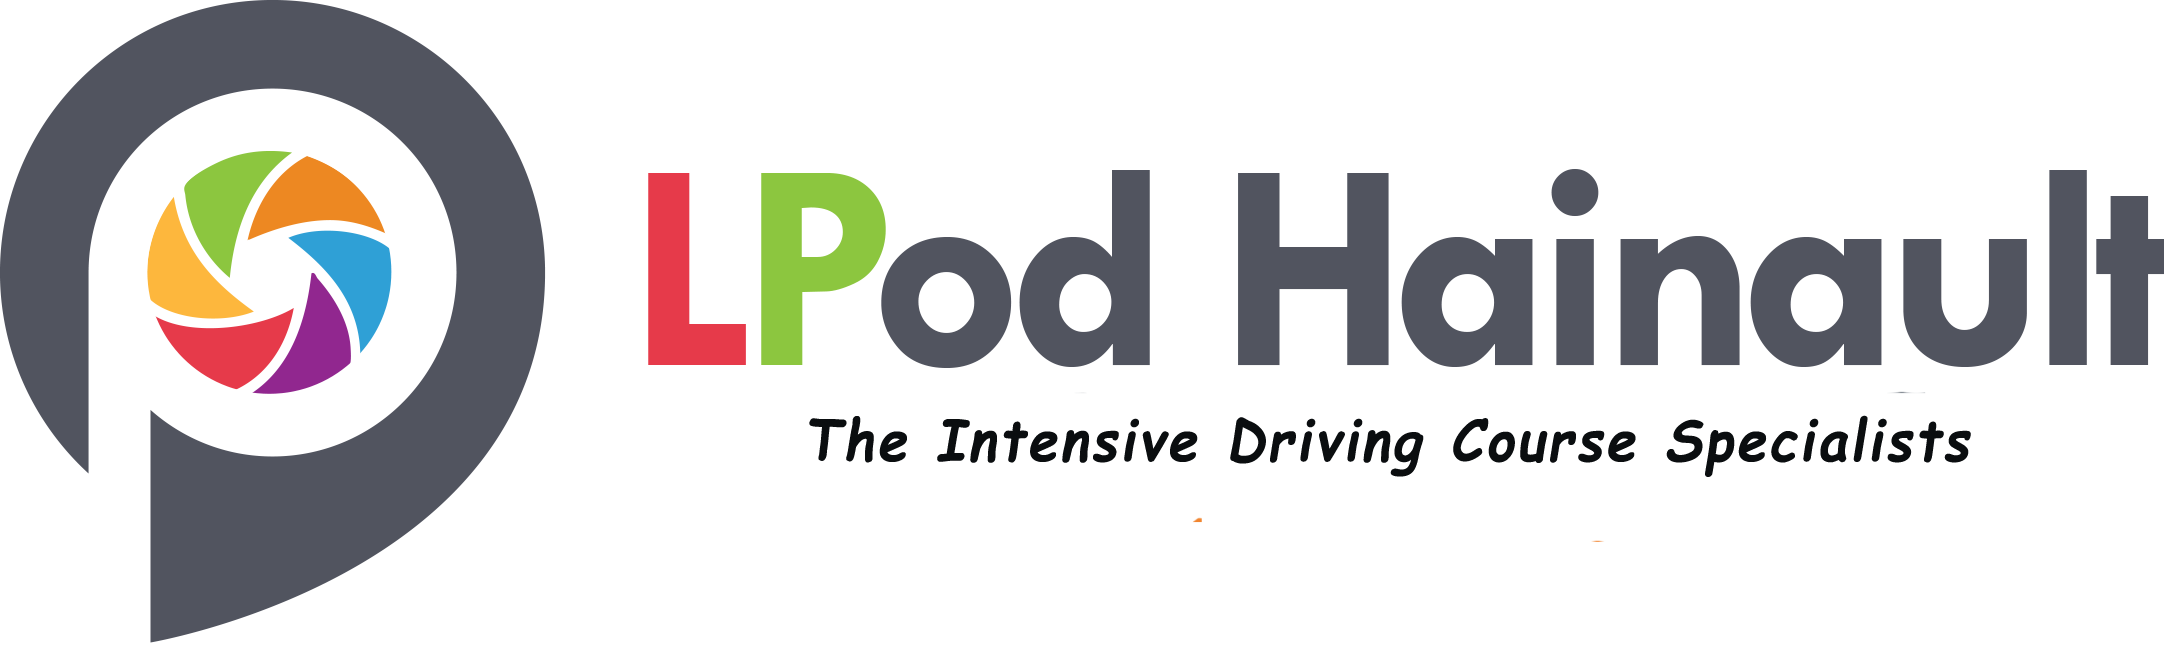 intensive driving courses hainault, intensive driving school hainault, intensive driving lessons hainault, one week driving course hainault, fast pass driving hainault, crash driving courses hainault, driving lessons hainault, automatic driving lessons hainault